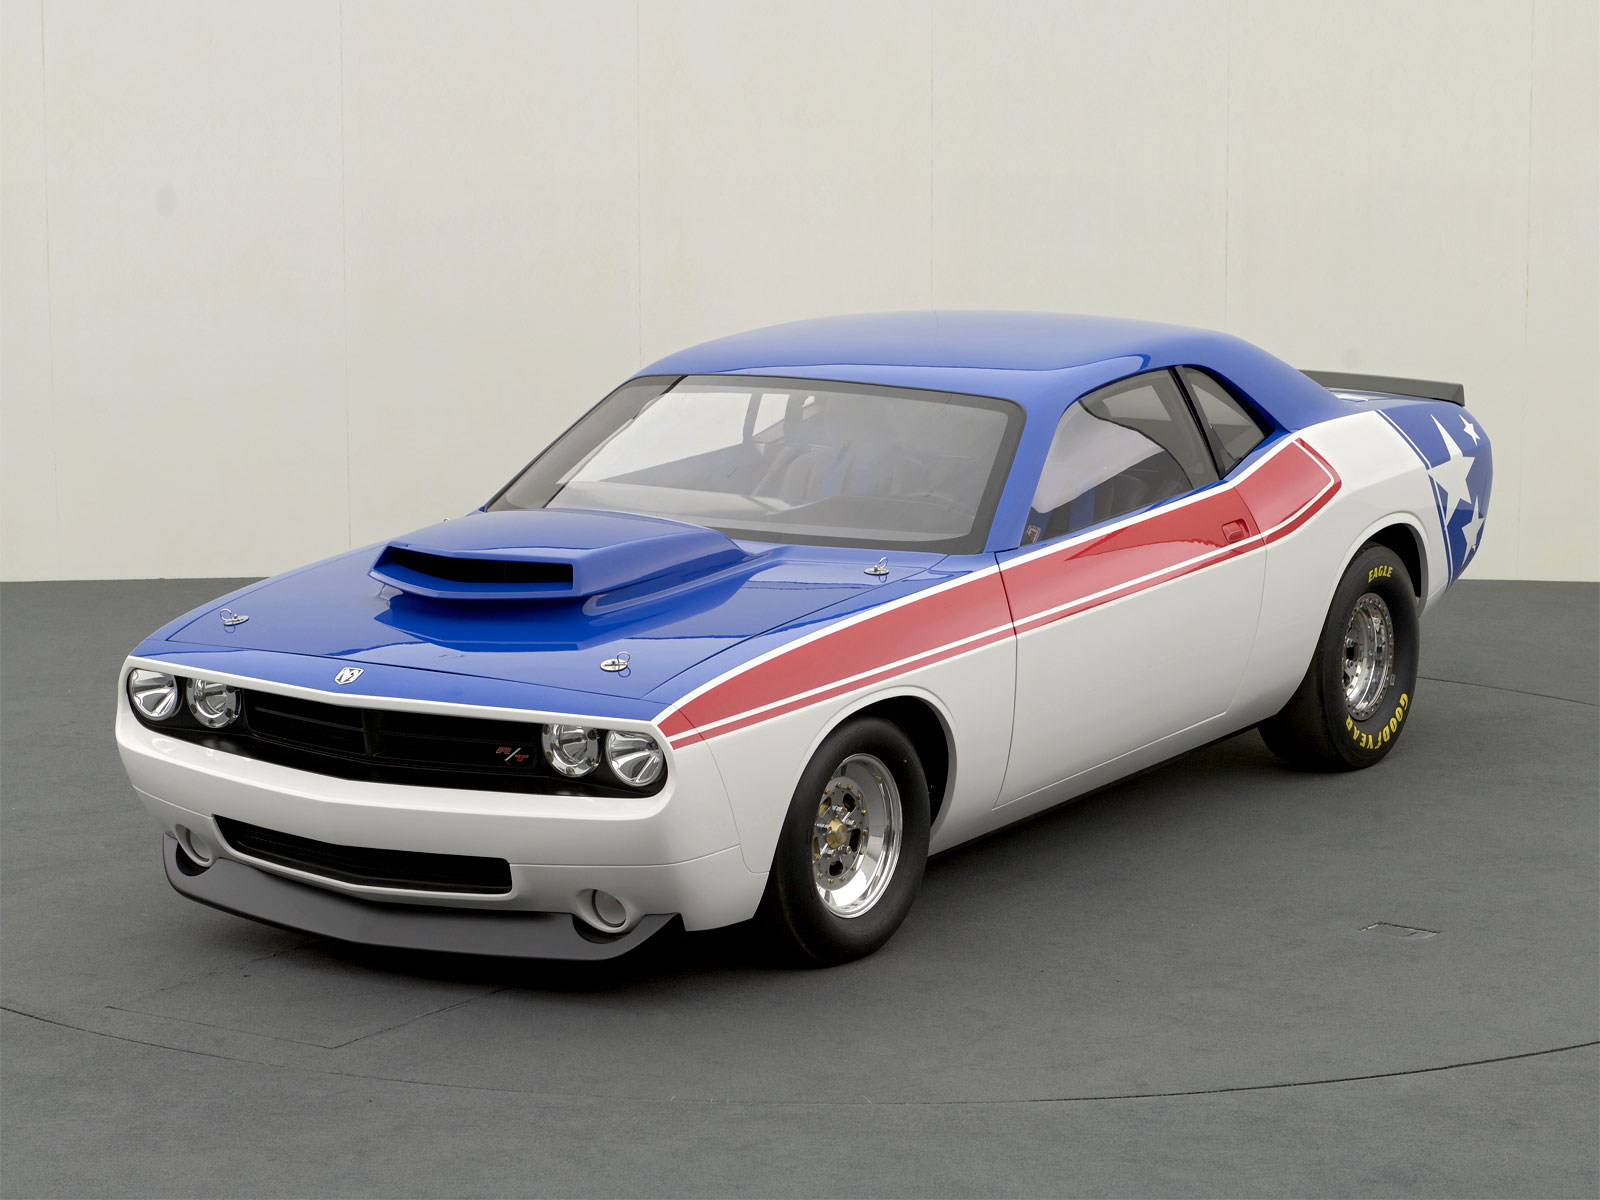 2006 dodge challenger super stock concept history pictures value auction sales research and news. Black Bedroom Furniture Sets. Home Design Ideas